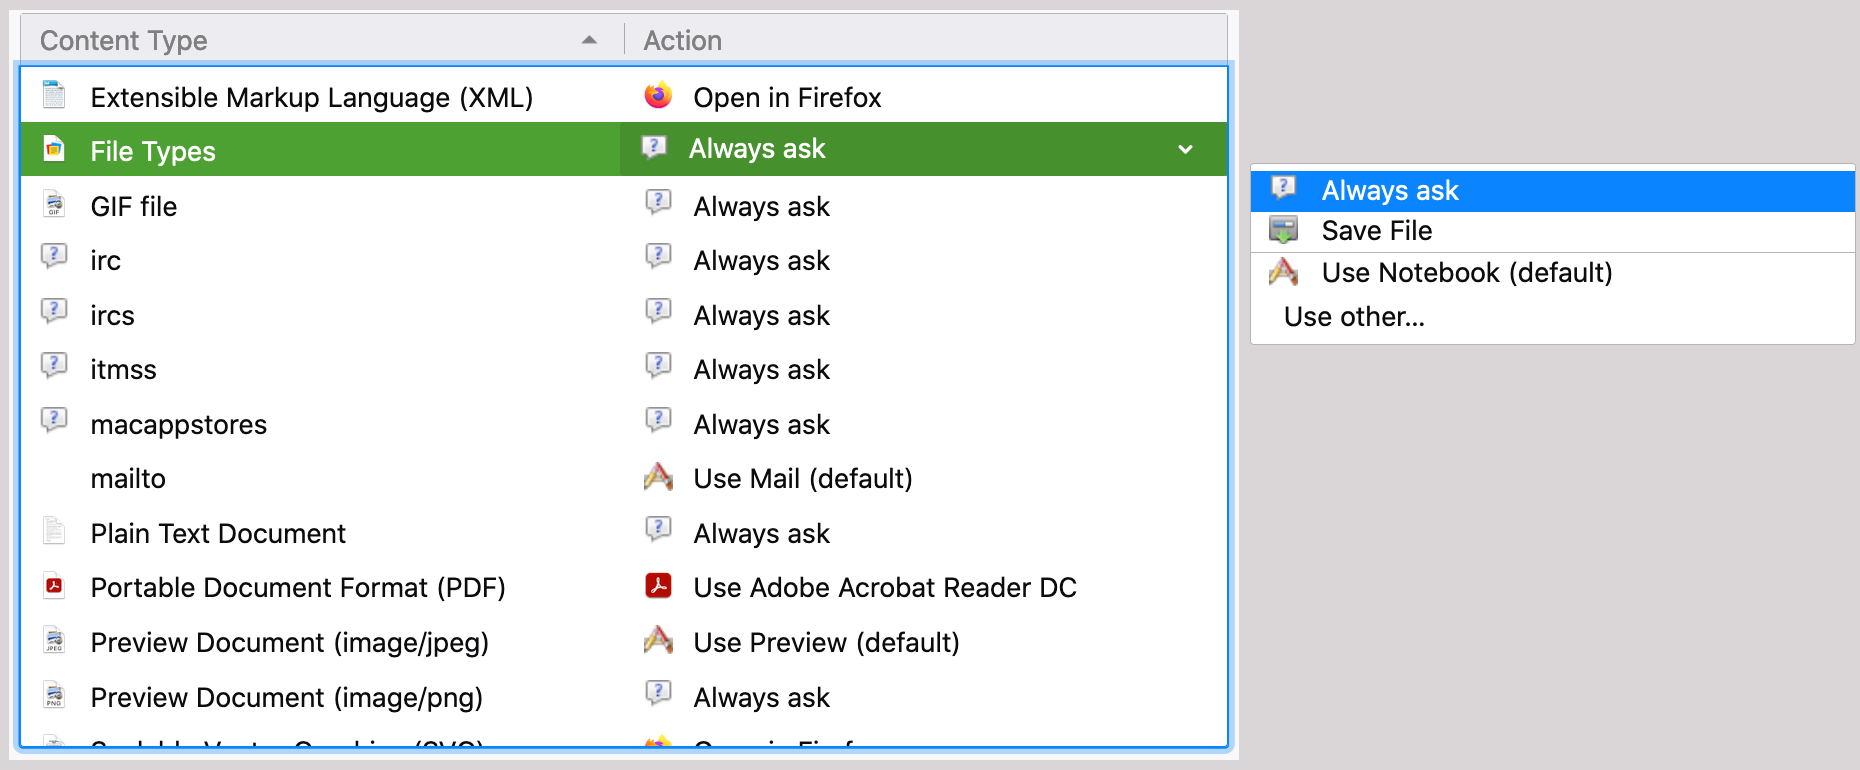 Firefox Always Ask as Default